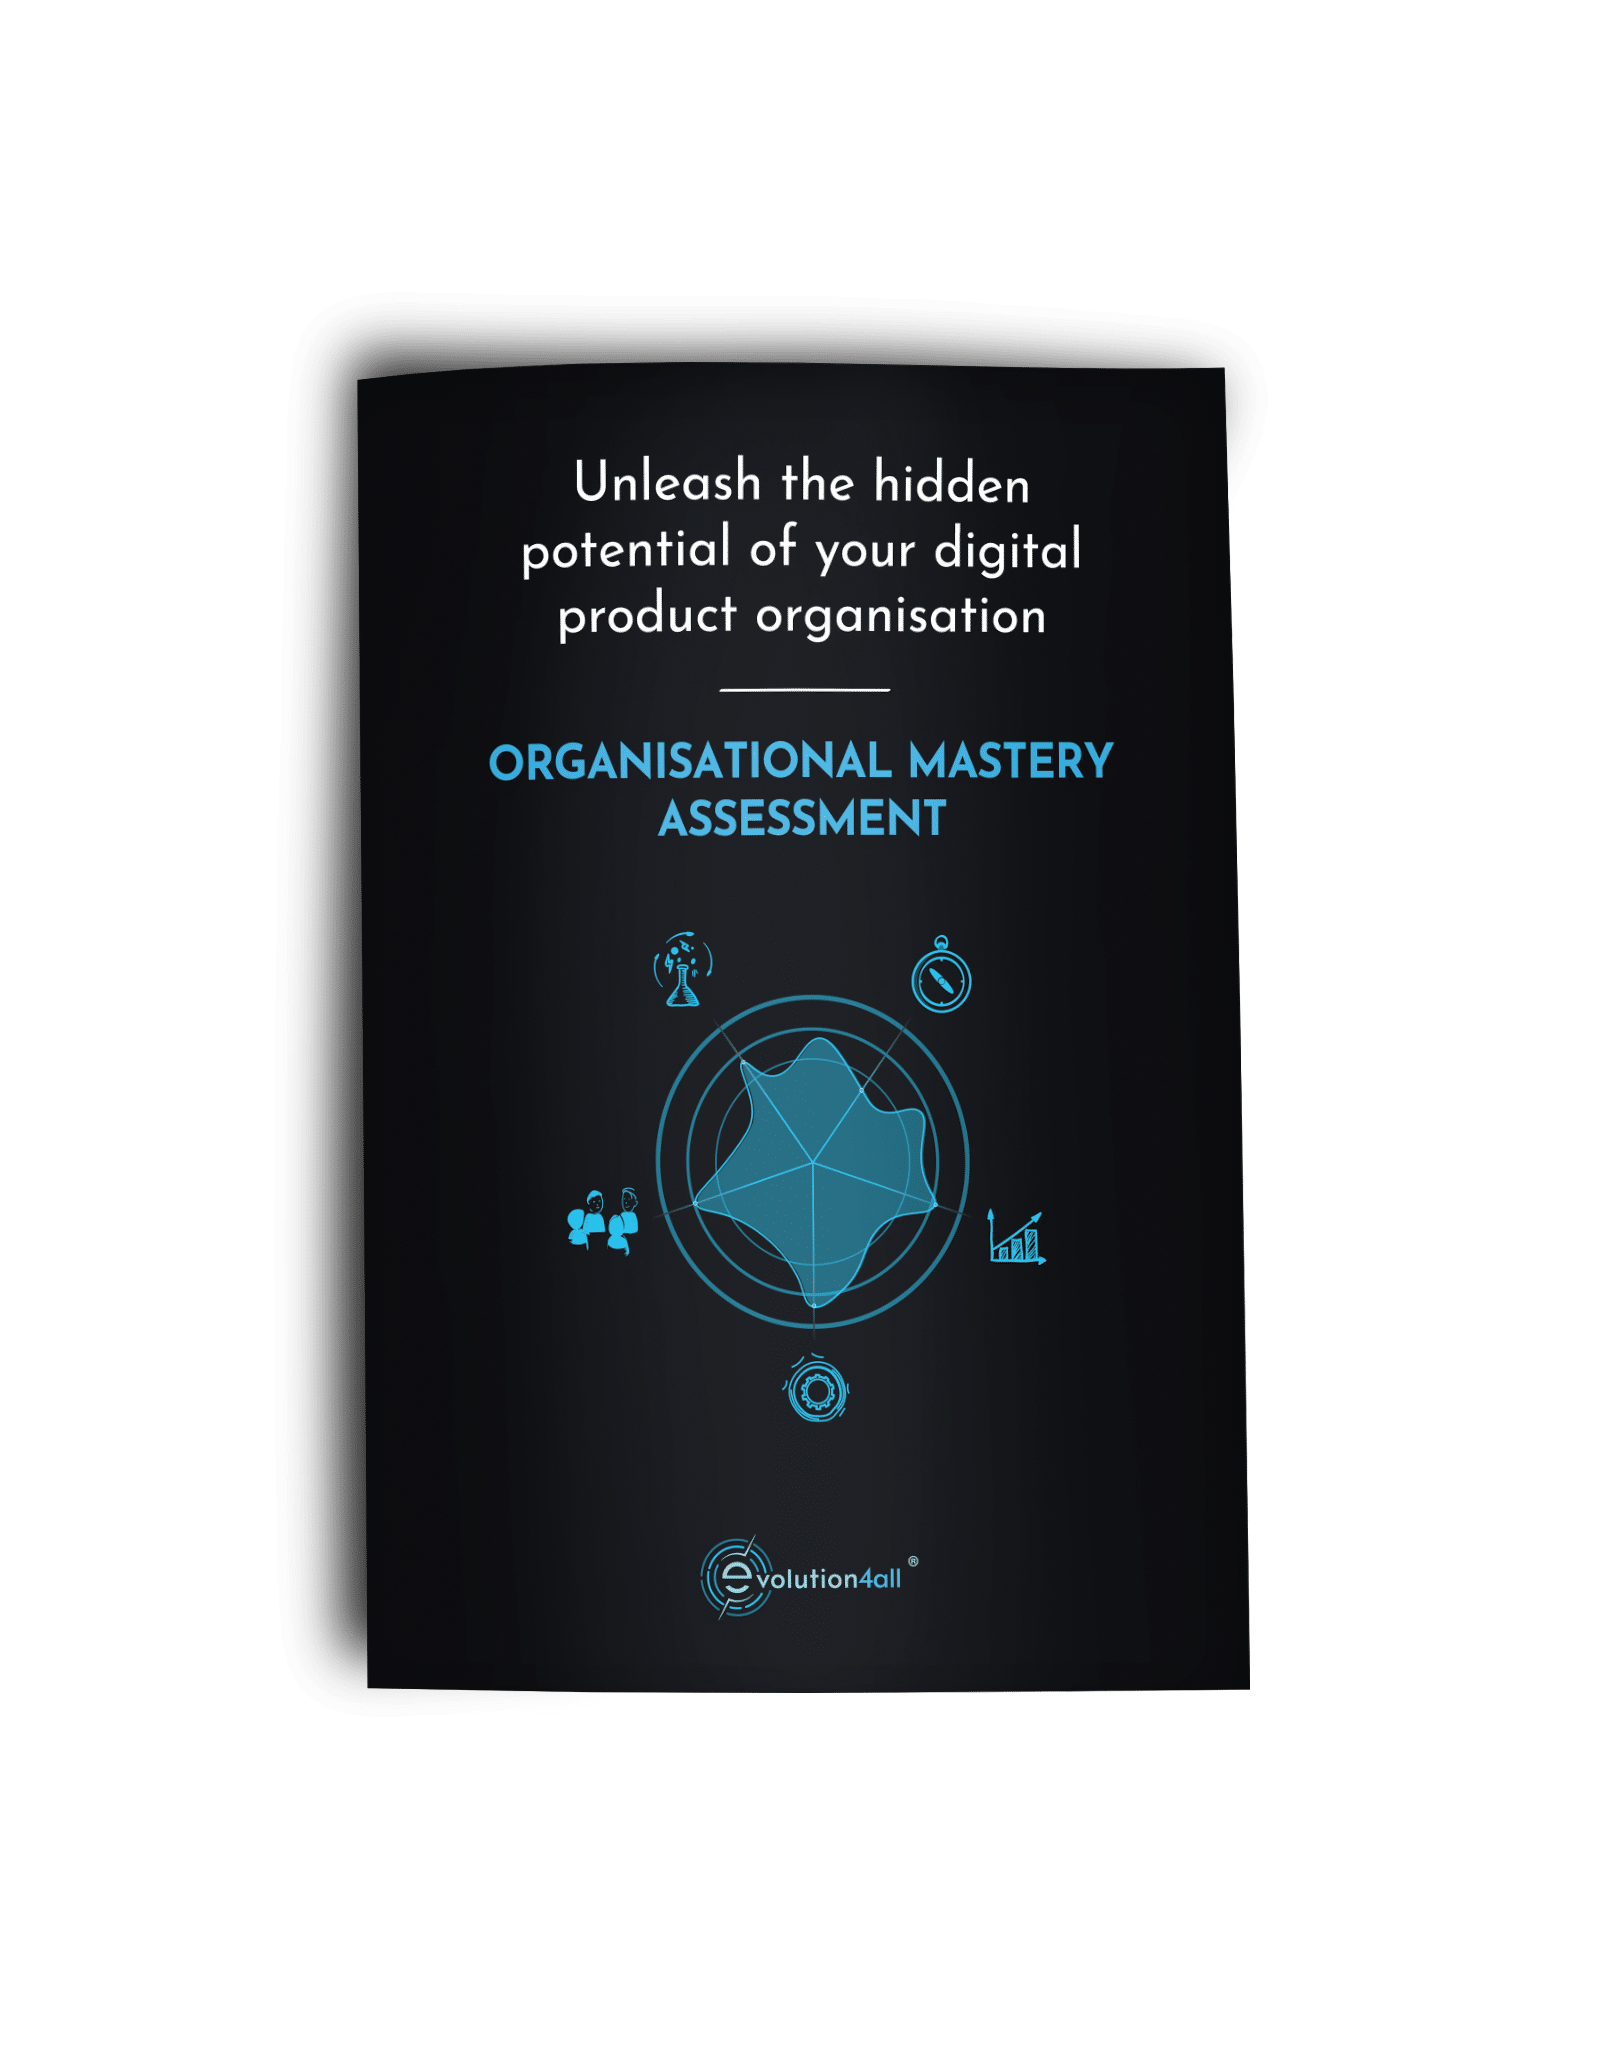 ORGANISATIONAL MASTERY ASSESSMENT